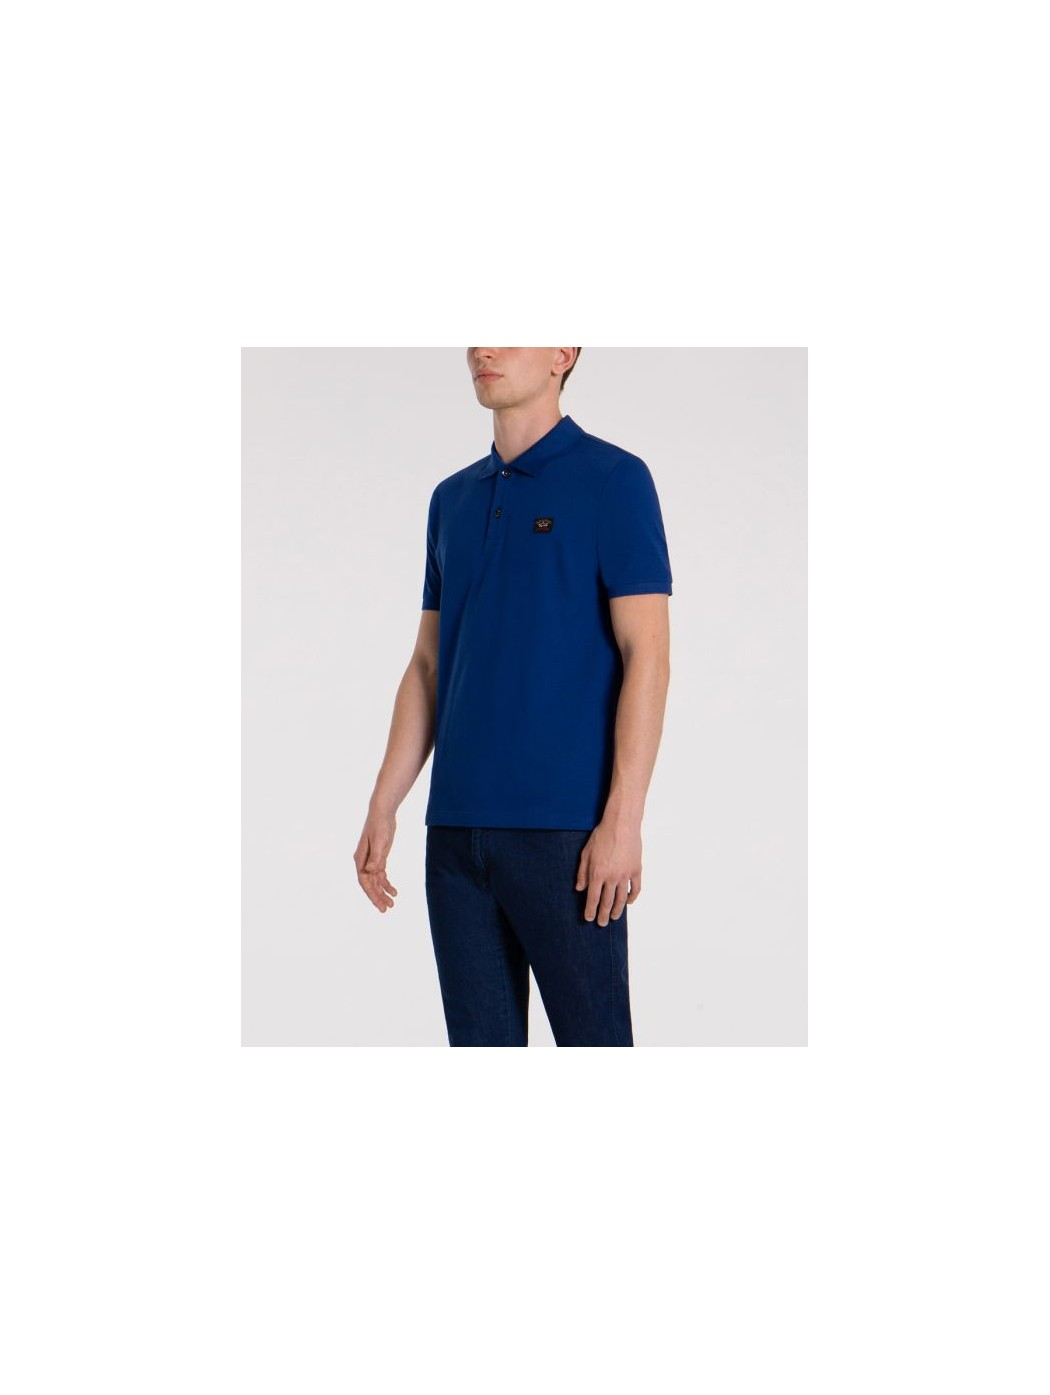 POLO BASE COTONE BLU ROYAL PAUL&SHARK C0P1070 342